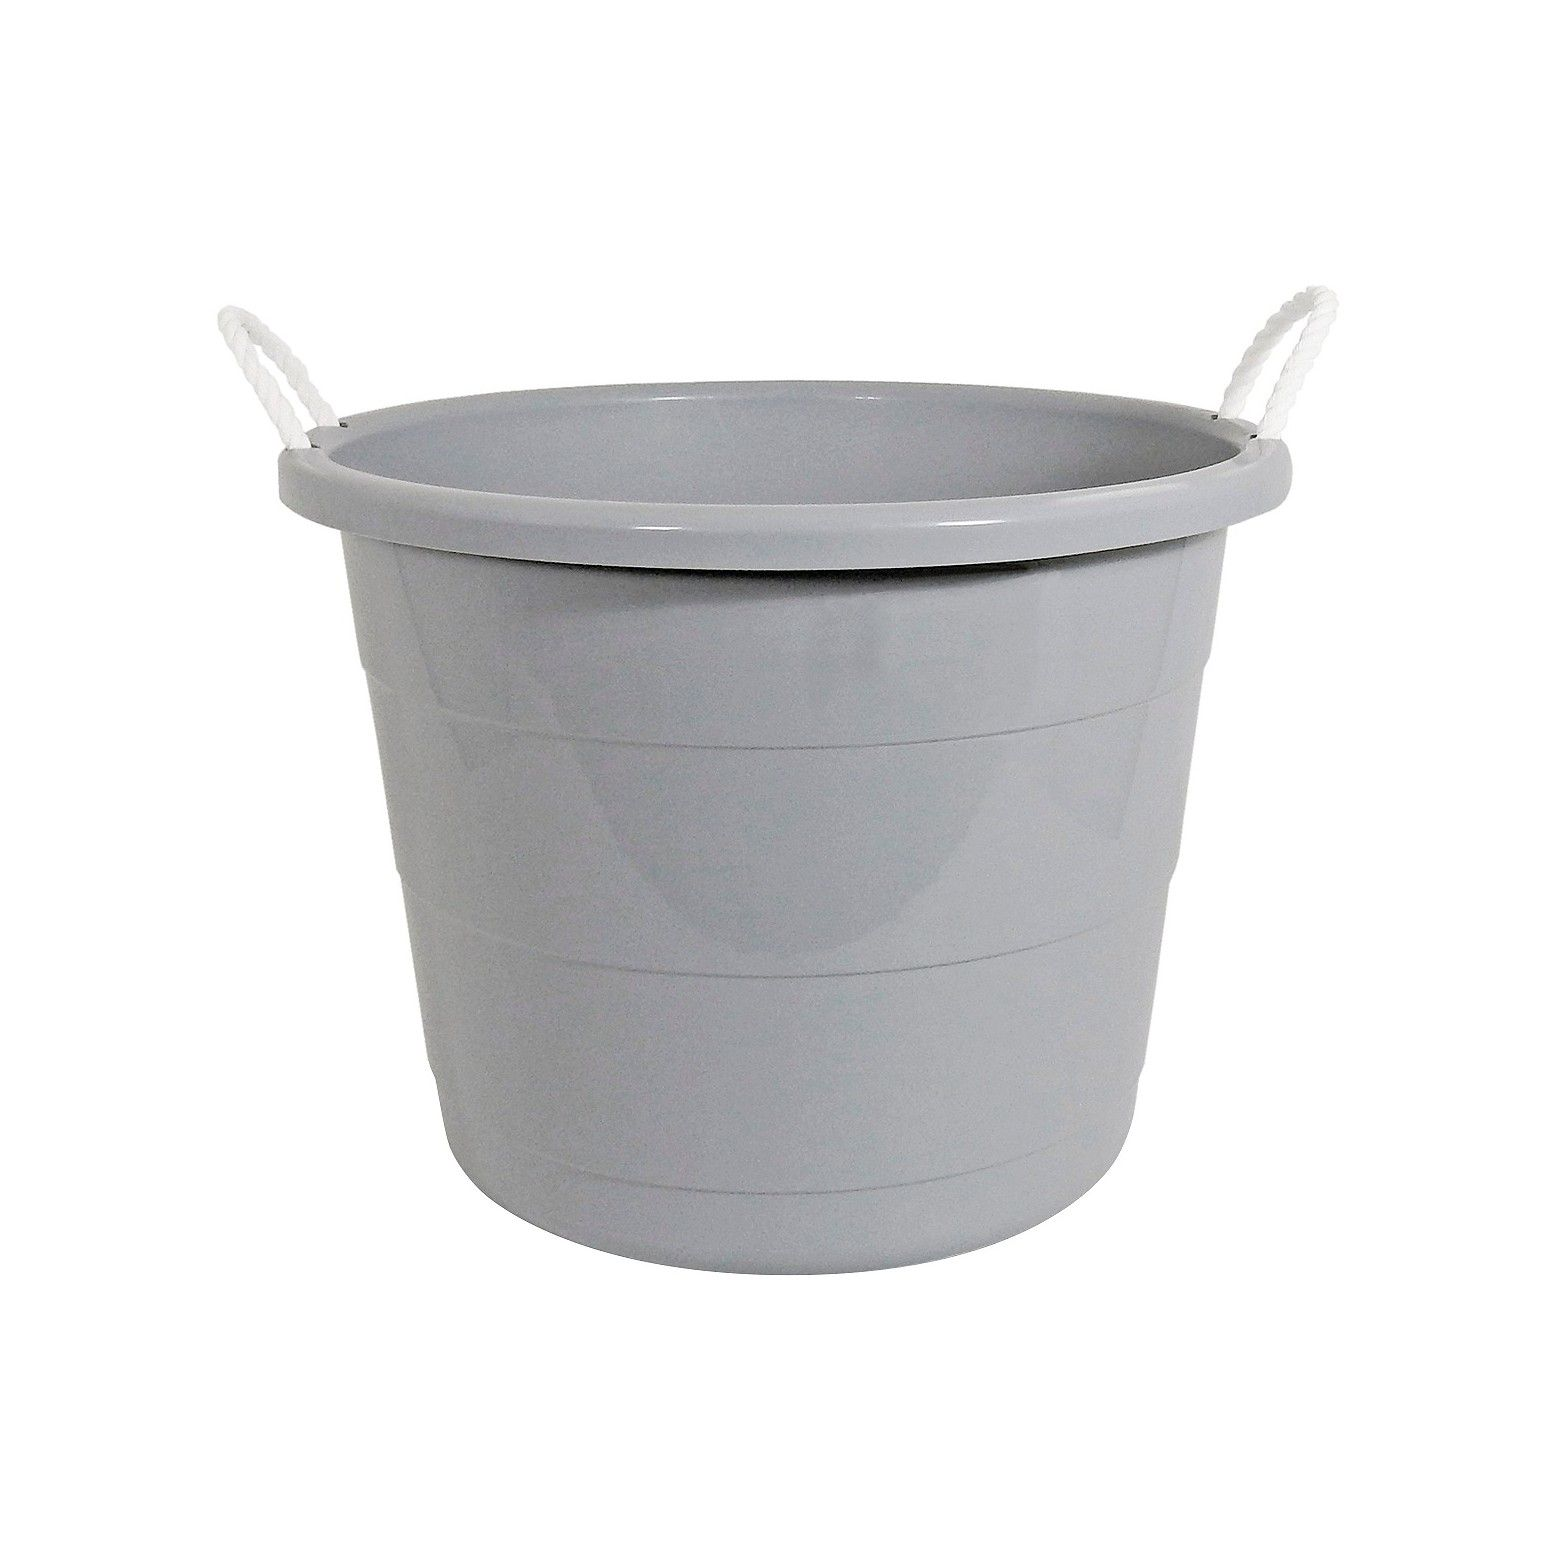 Circo 17 Gallon Rope Storage Tubs Are Open Tubs That Are Ideal For Storing Toys Laundry And Large Plastic Storage Bins Plastic Storage Bins Toy Storage Bins